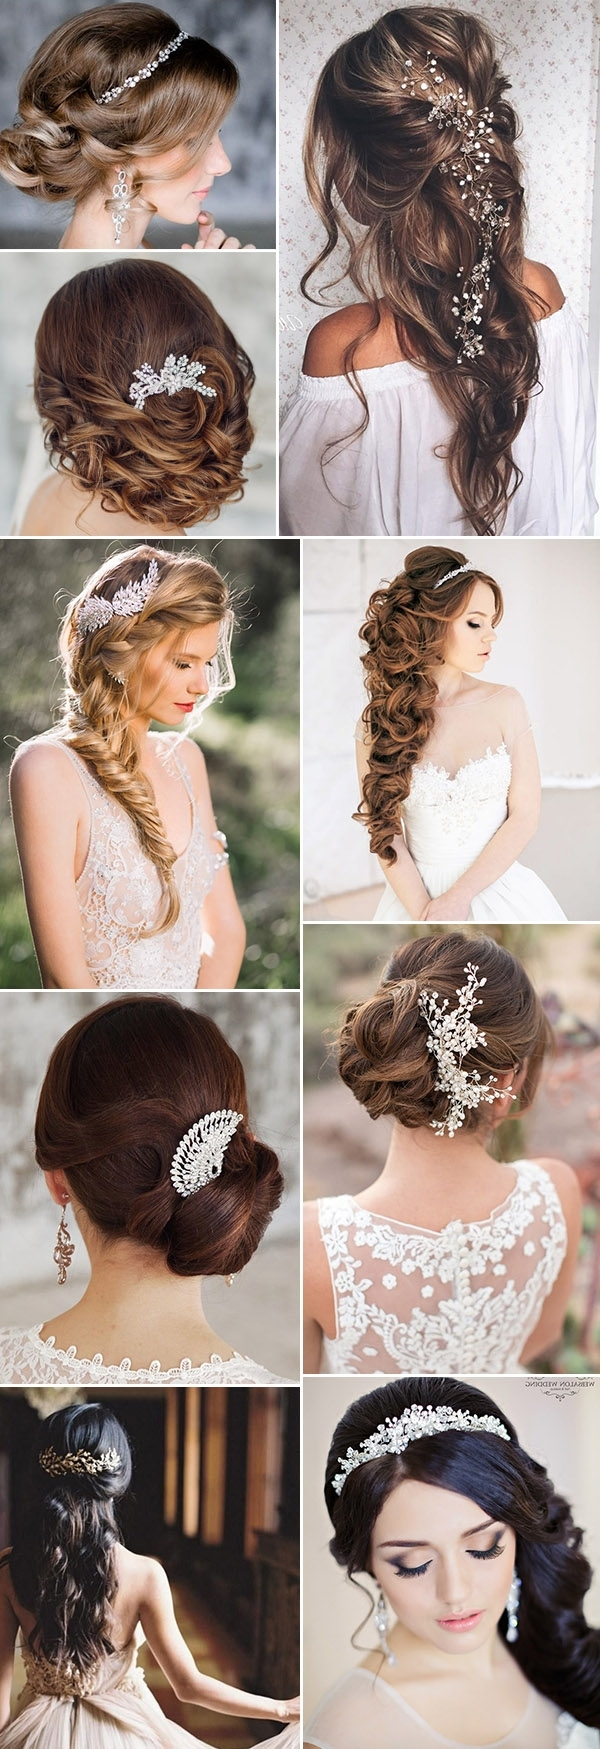 Latest Wedding Hairstyles With Accessories Regarding Top 20 Bridal Headpieces For Your Wedding Hairstyles (View 8 of 15)